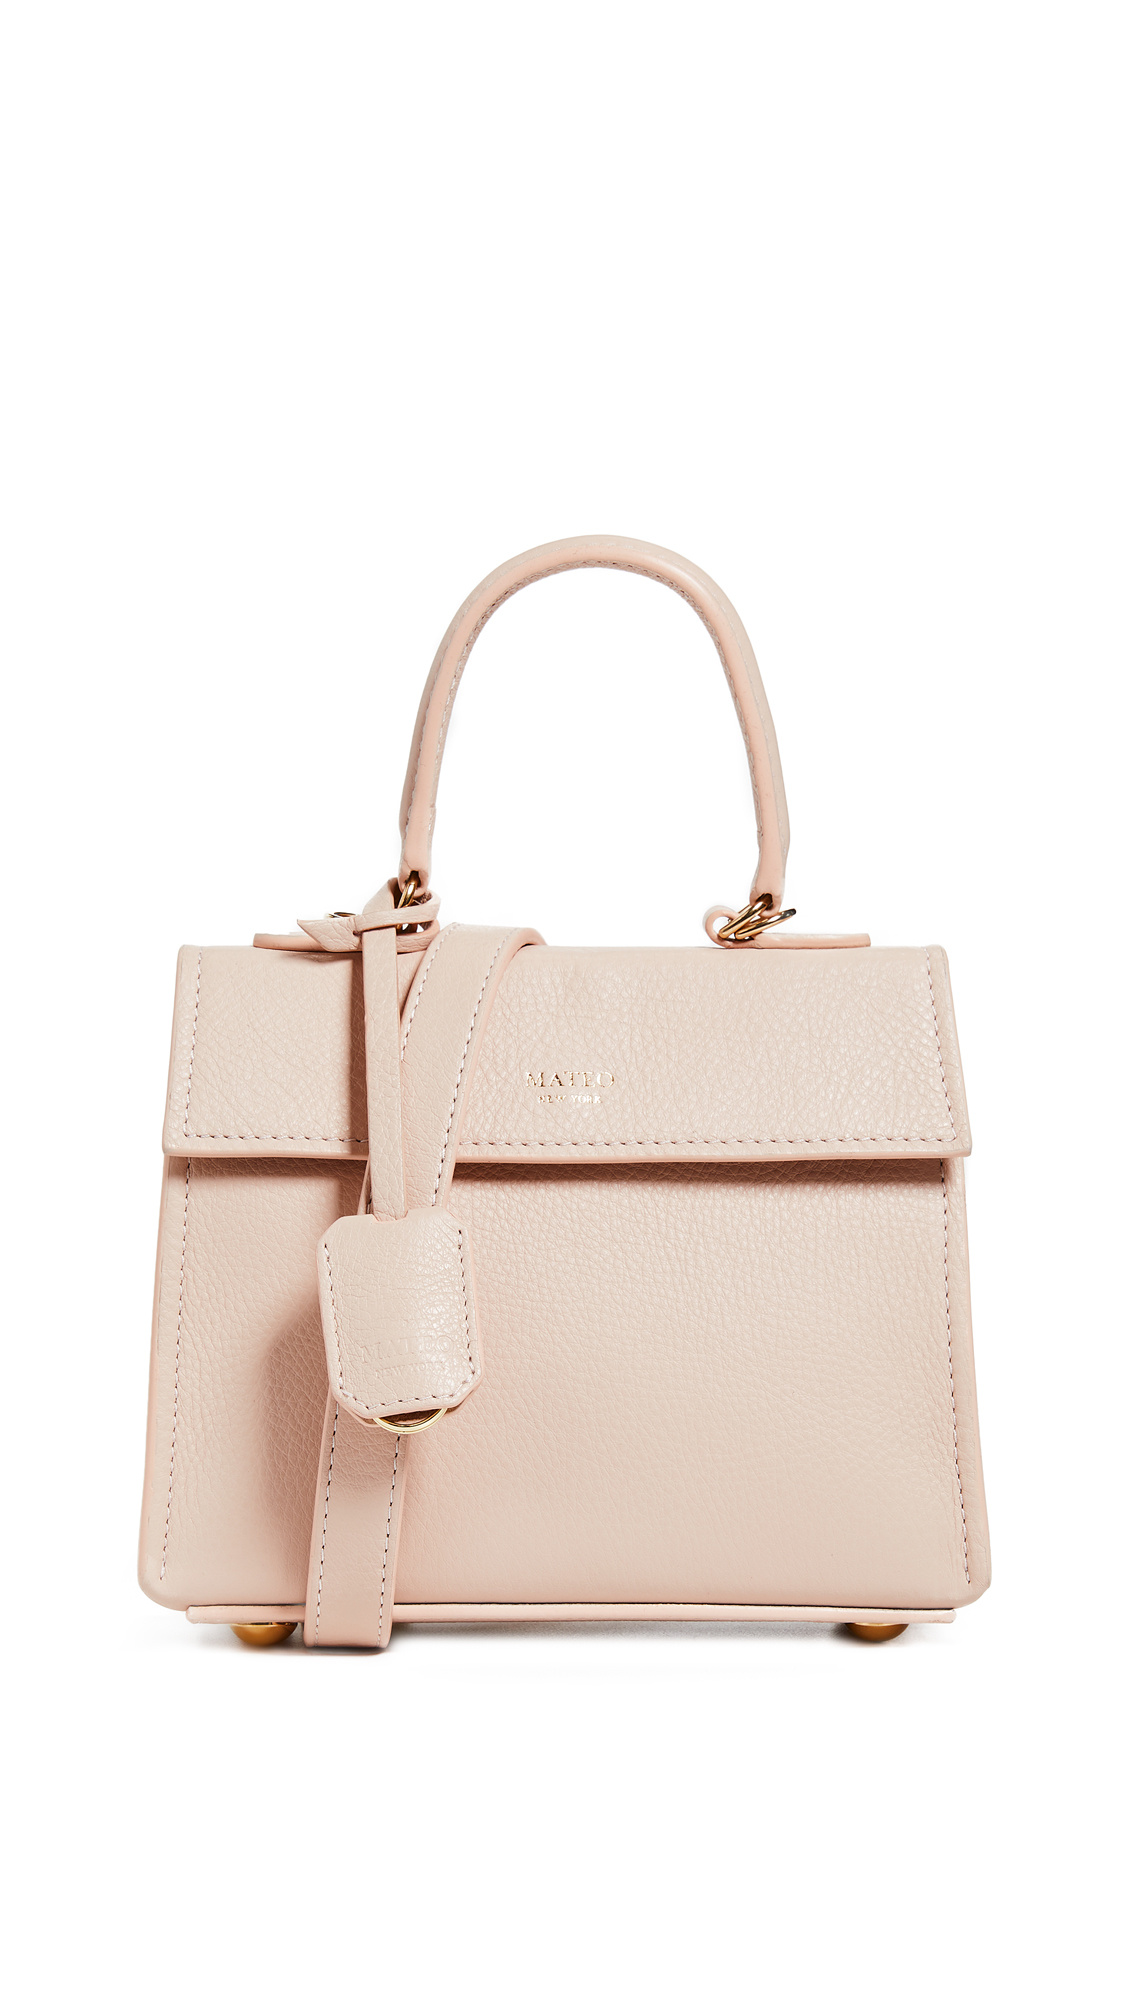 MATEO THE ELIZABETH MINI SATCHEL